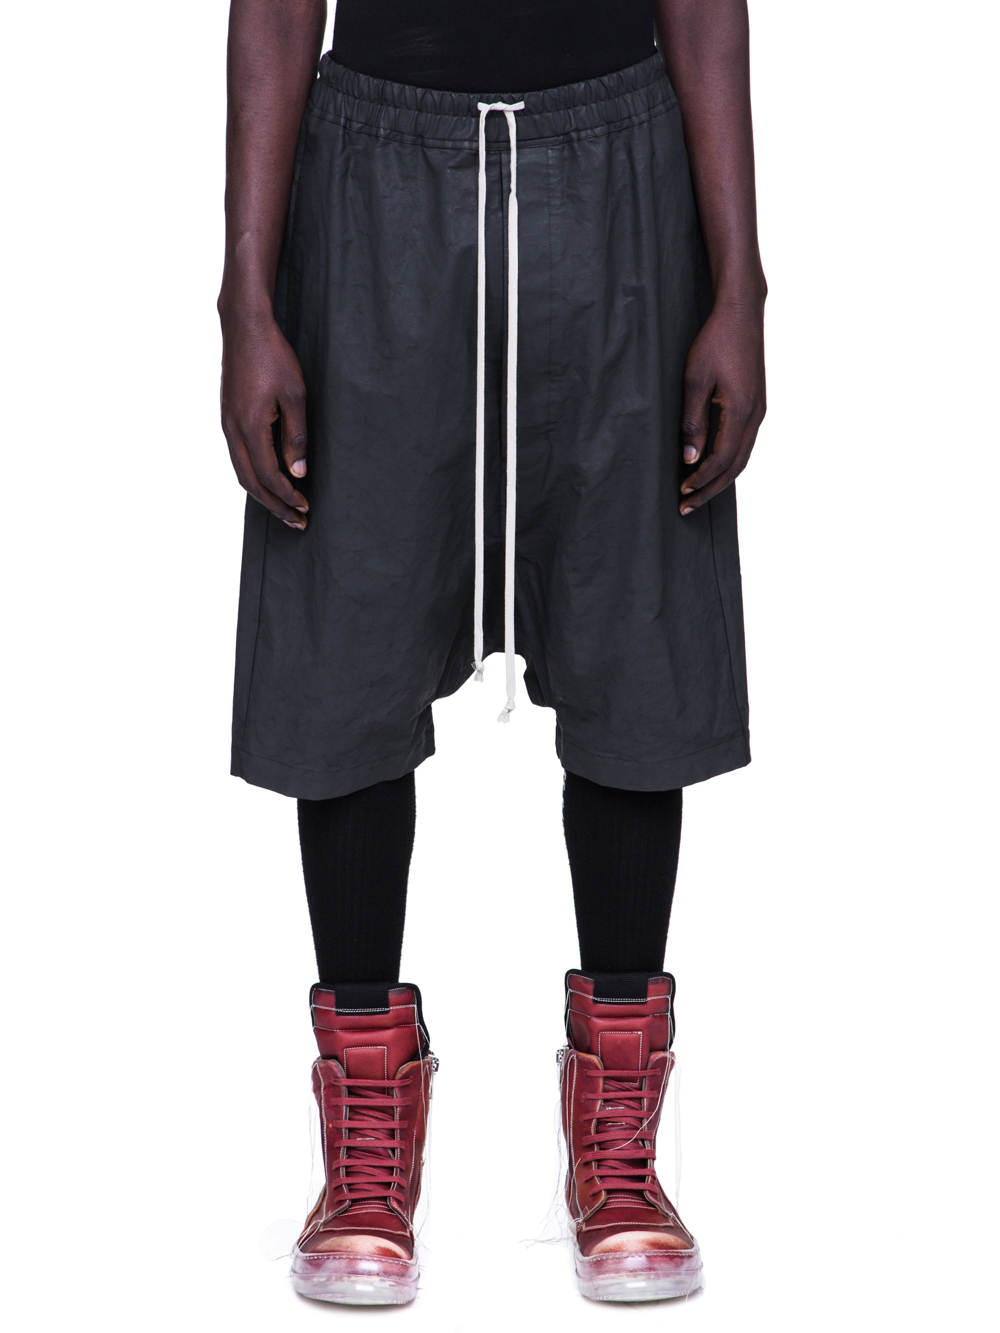 RICK OWENS SS19 BABEL RICK'S PODS IN BLACK